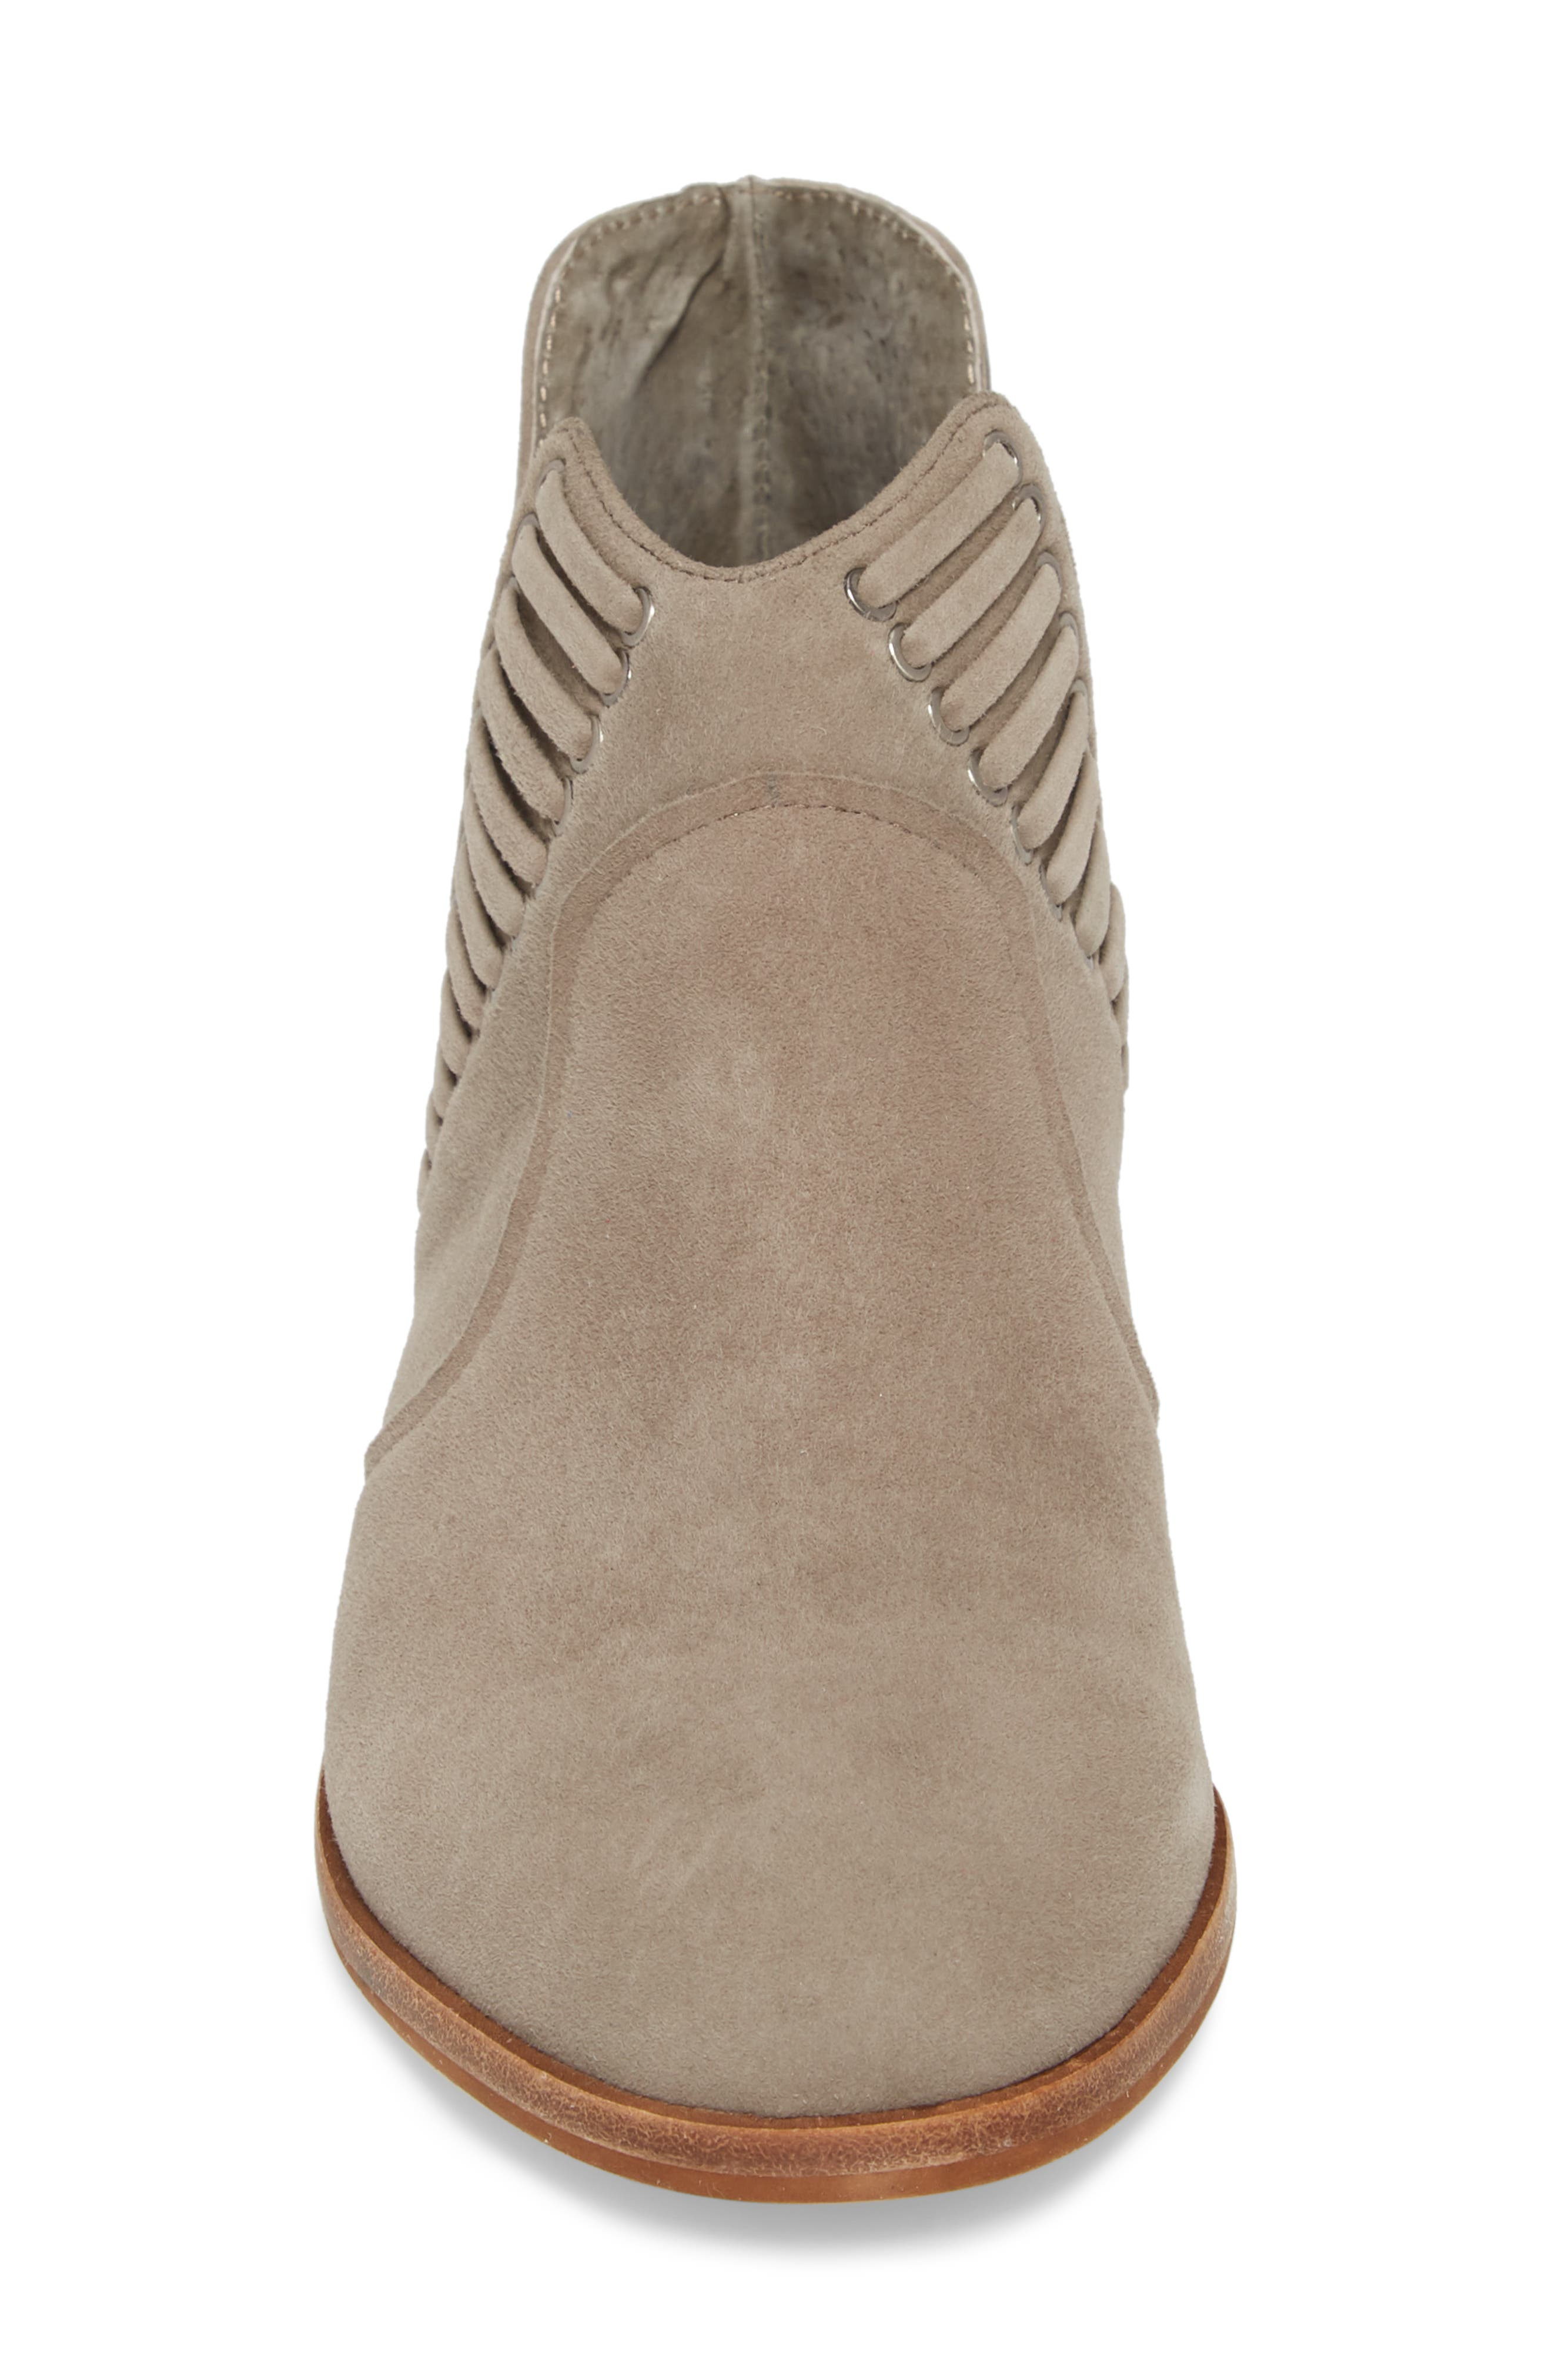 Pevista Bootie,                             Alternate thumbnail 4, color,                             FOXY SUEDE